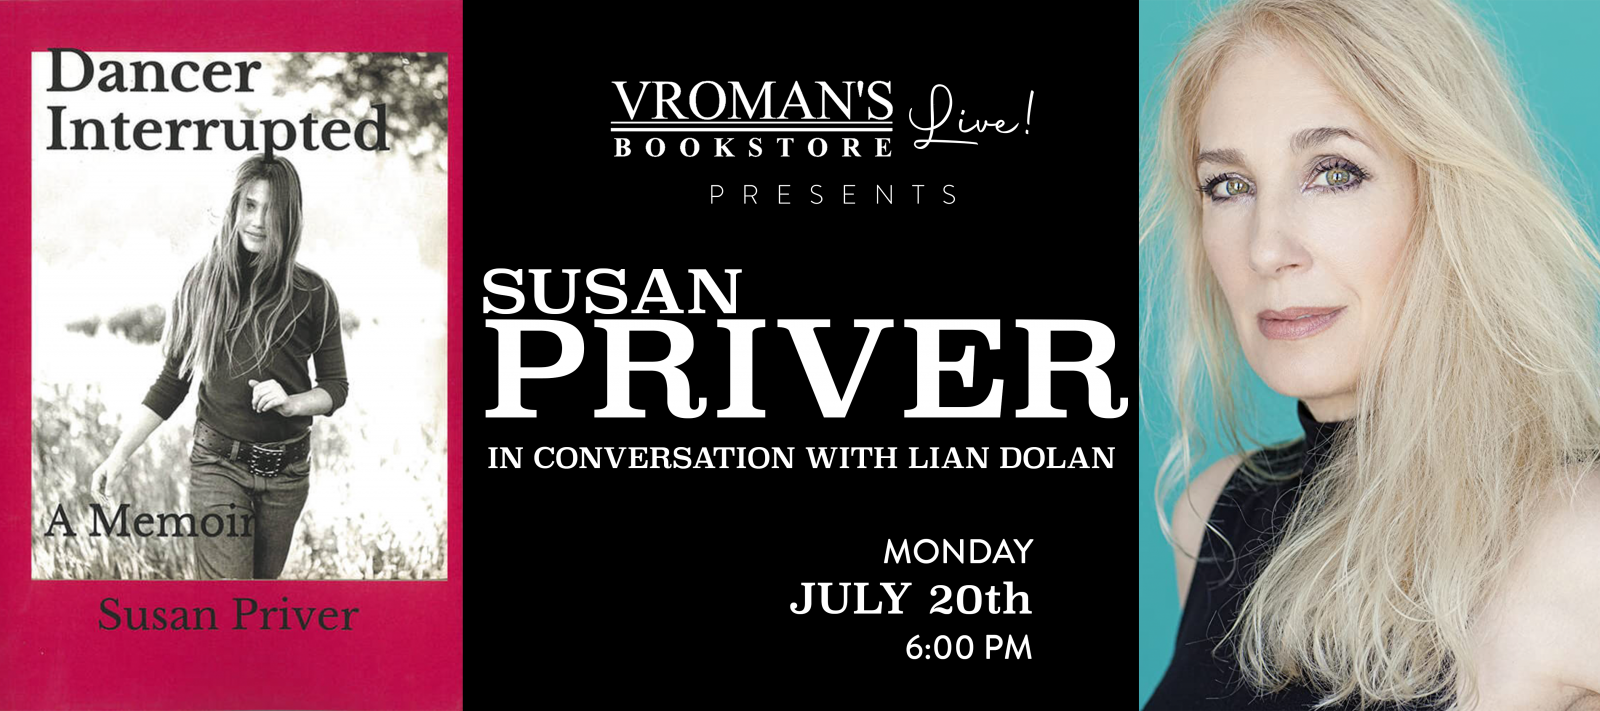 Vroman's LIve - Susan Priver, in conversation with Lian Dolan, on Monday July 20th at 6pm